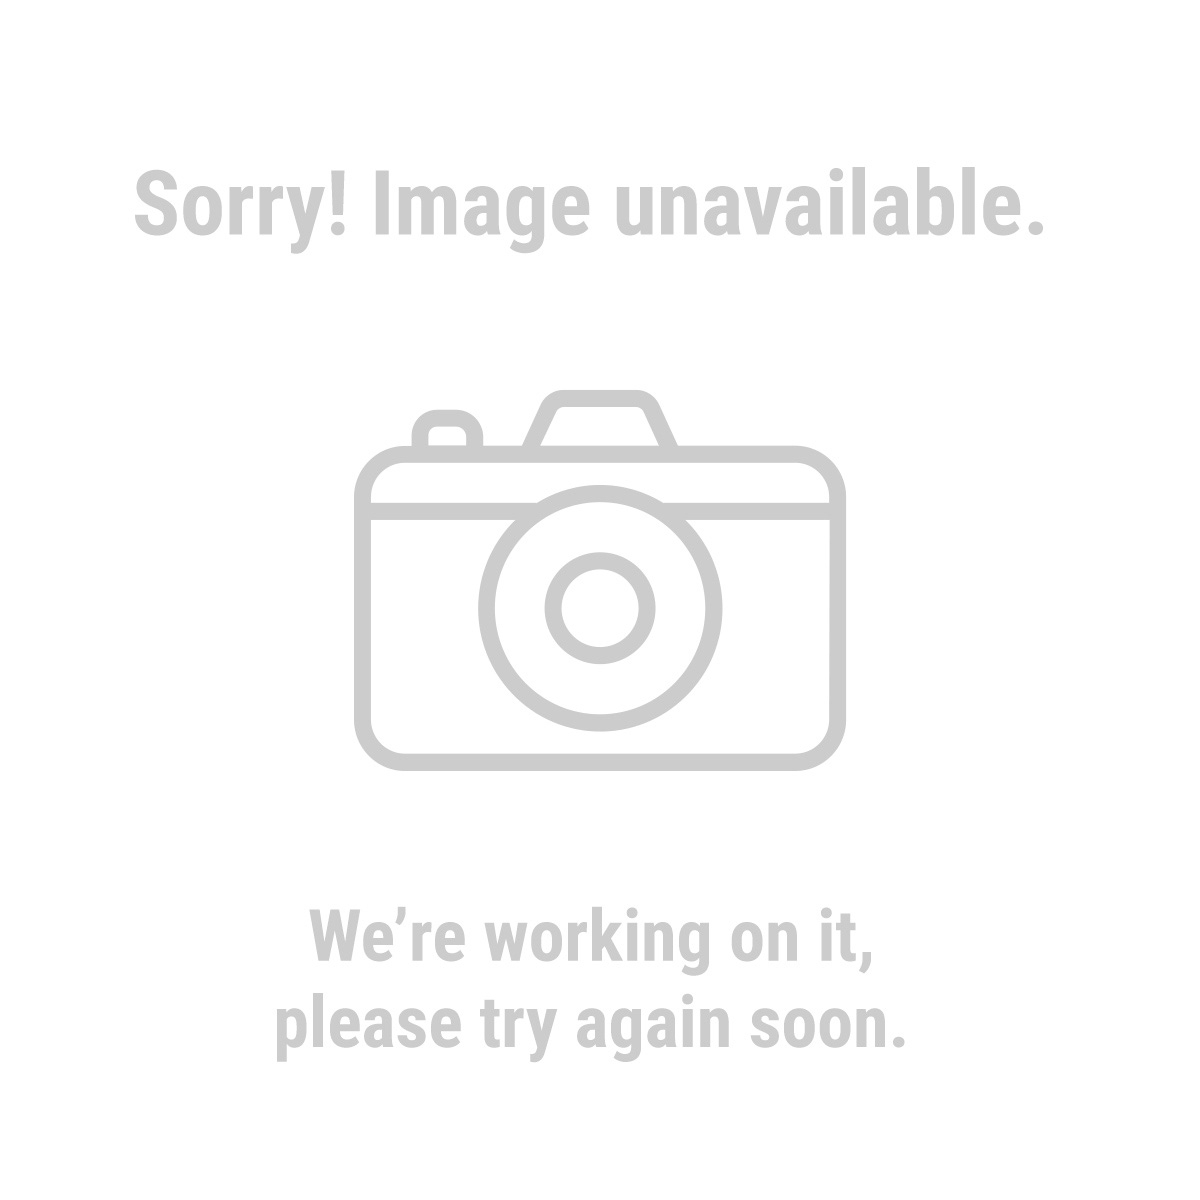 Western Safety 93177 Flexible Knee Pads, 1 Pair